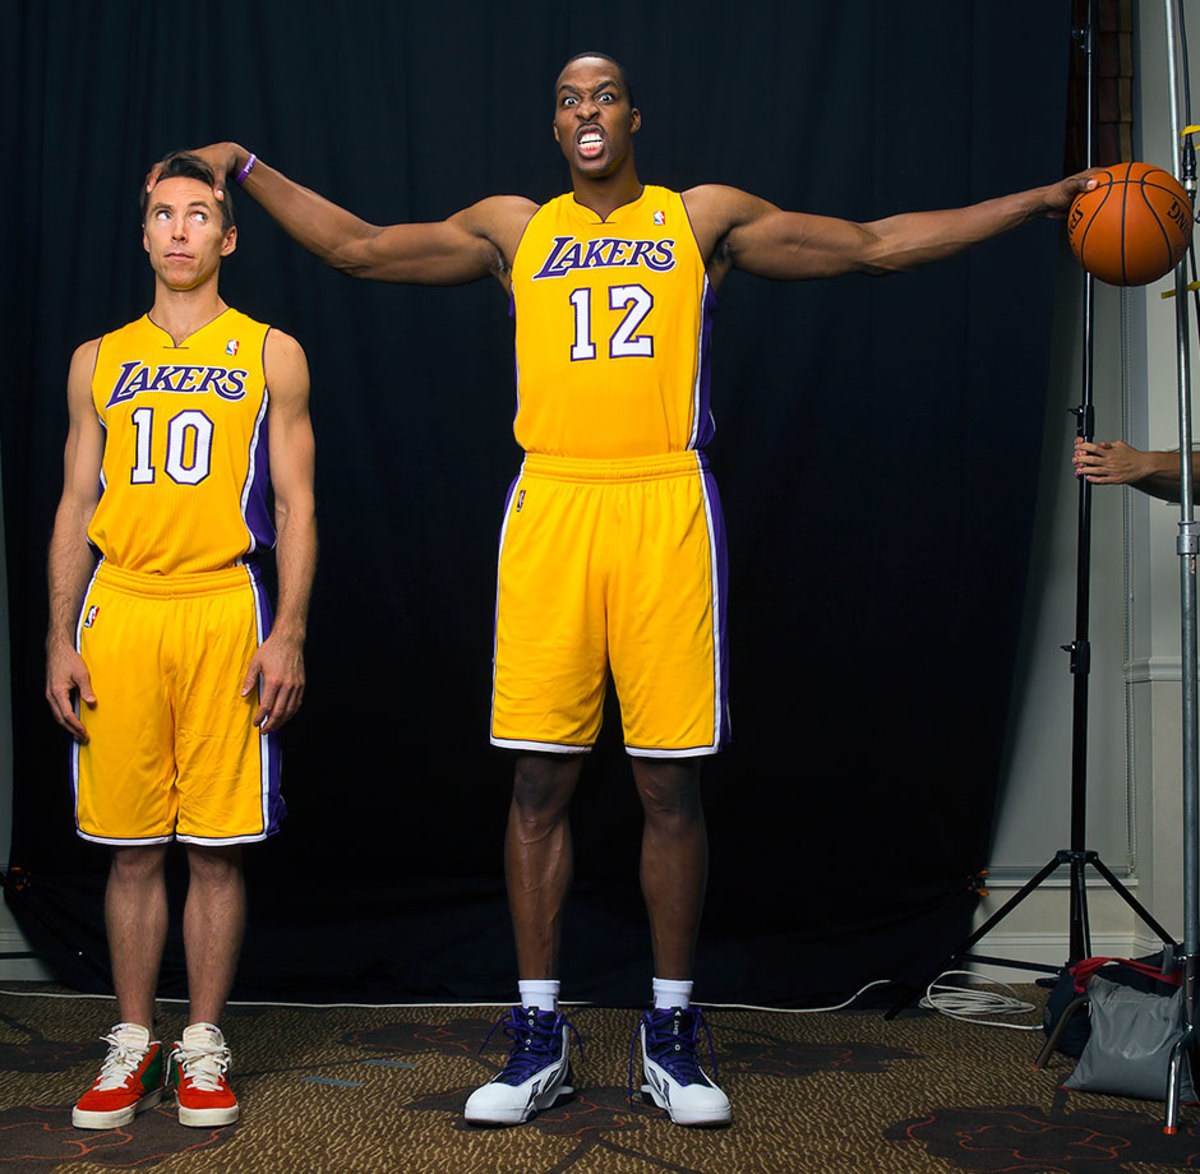 Dwight-Howard-Steve-Nash-op3h-17941.jpg